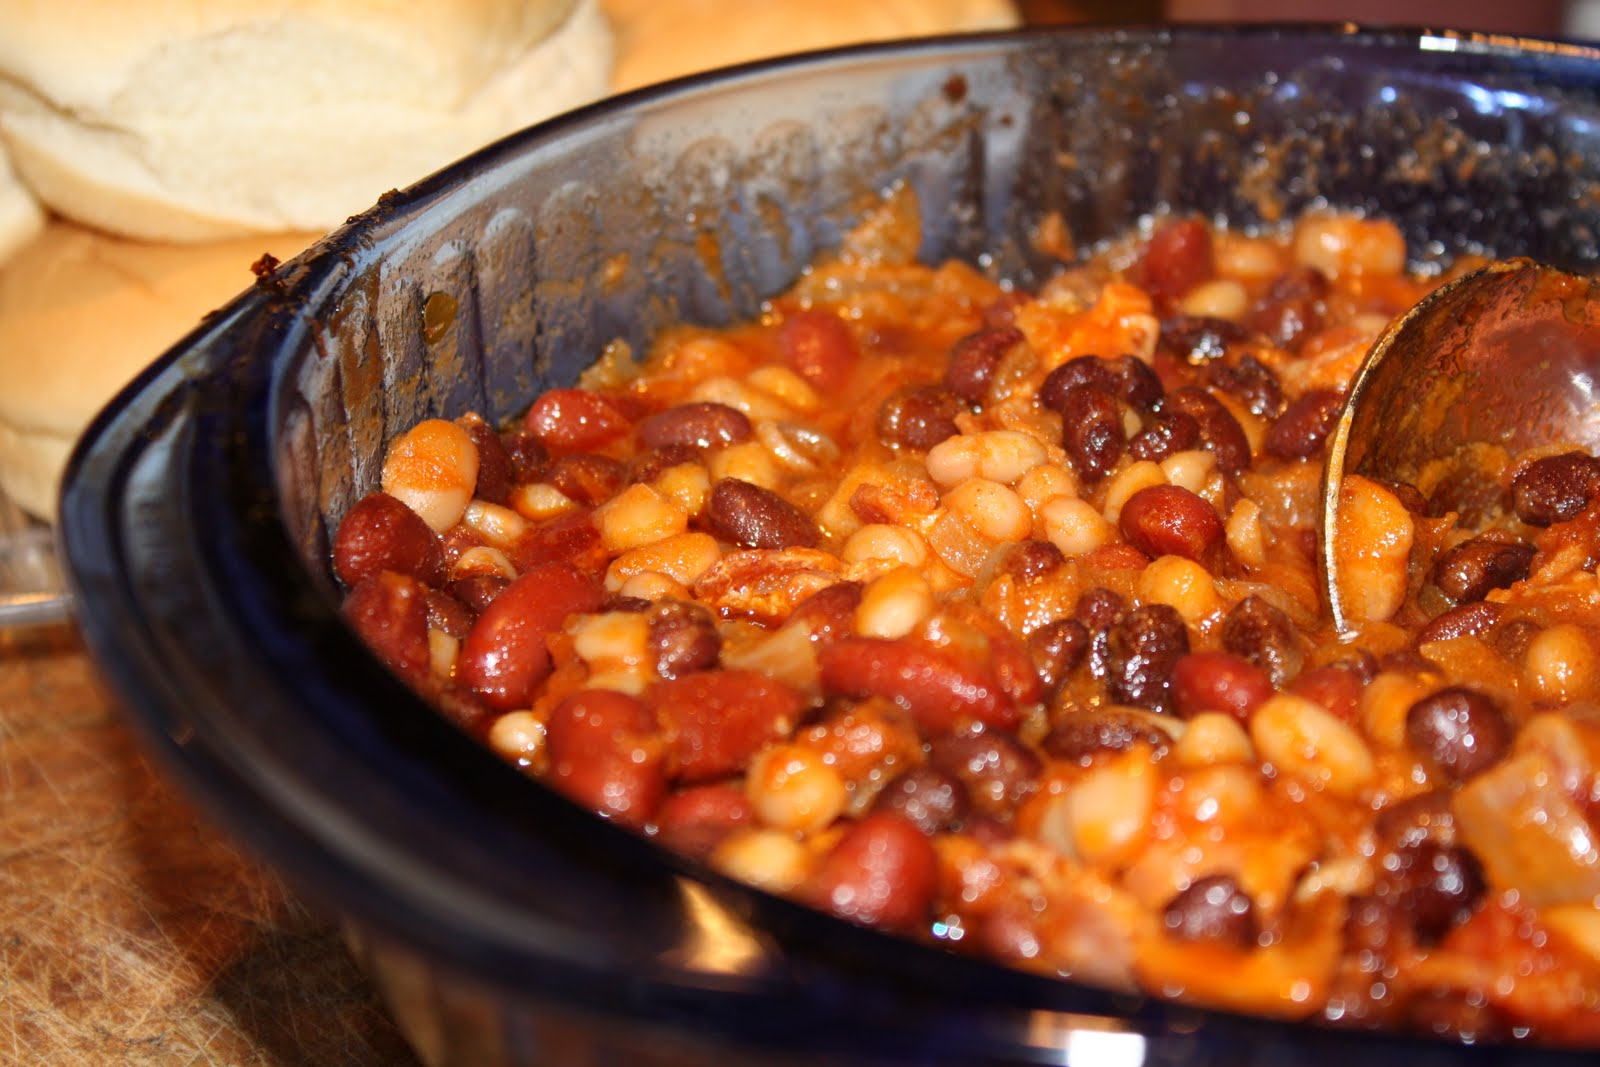 ... baked beans ii boston baked beans maple baked beans baked beans in the